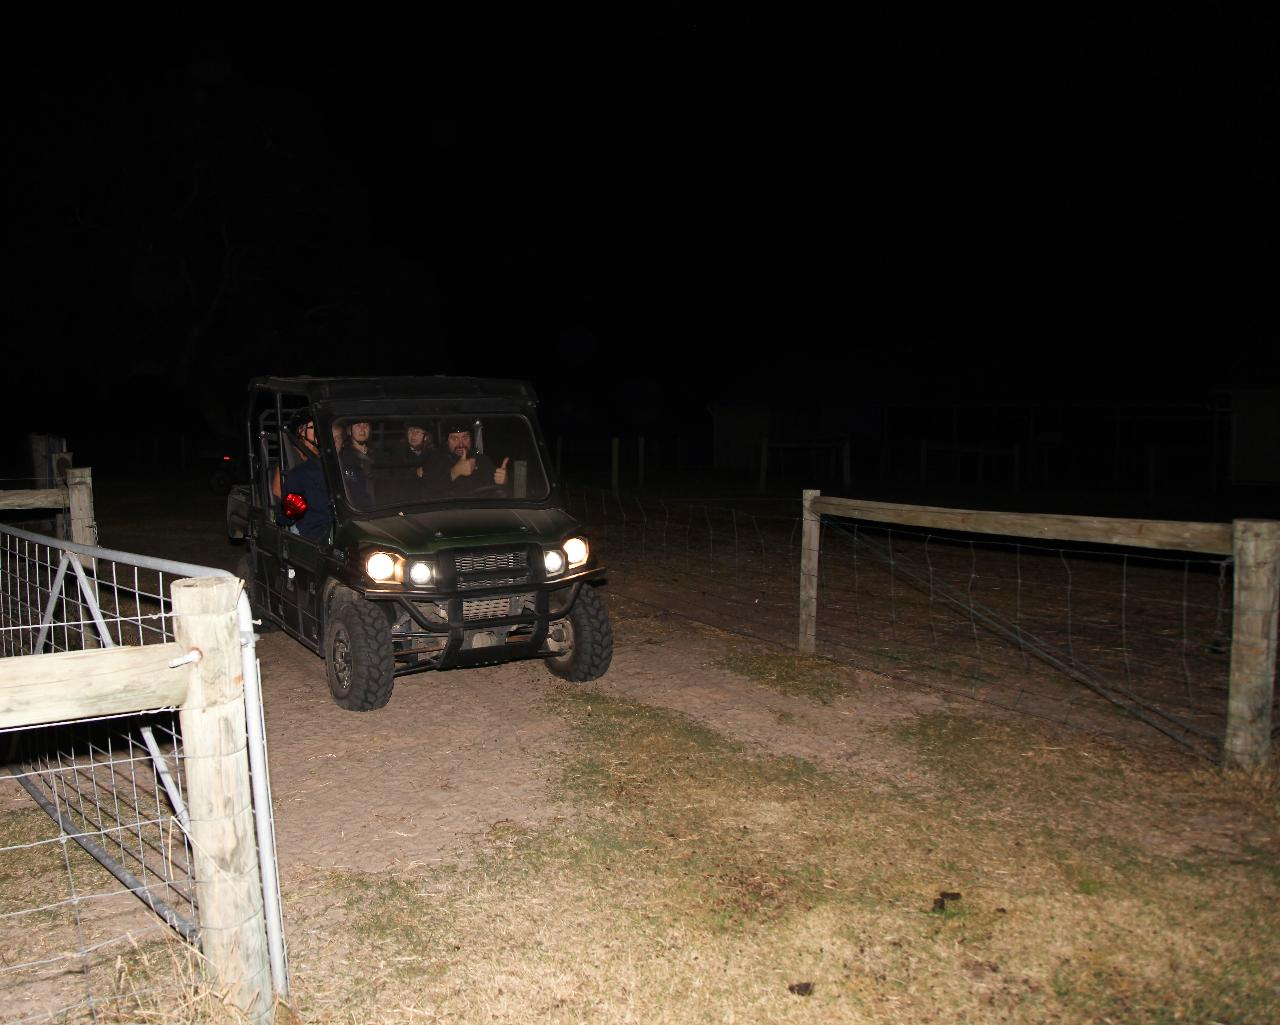 Softfoot Marsupial Sanctuary 2 hour Nocturnal Tour